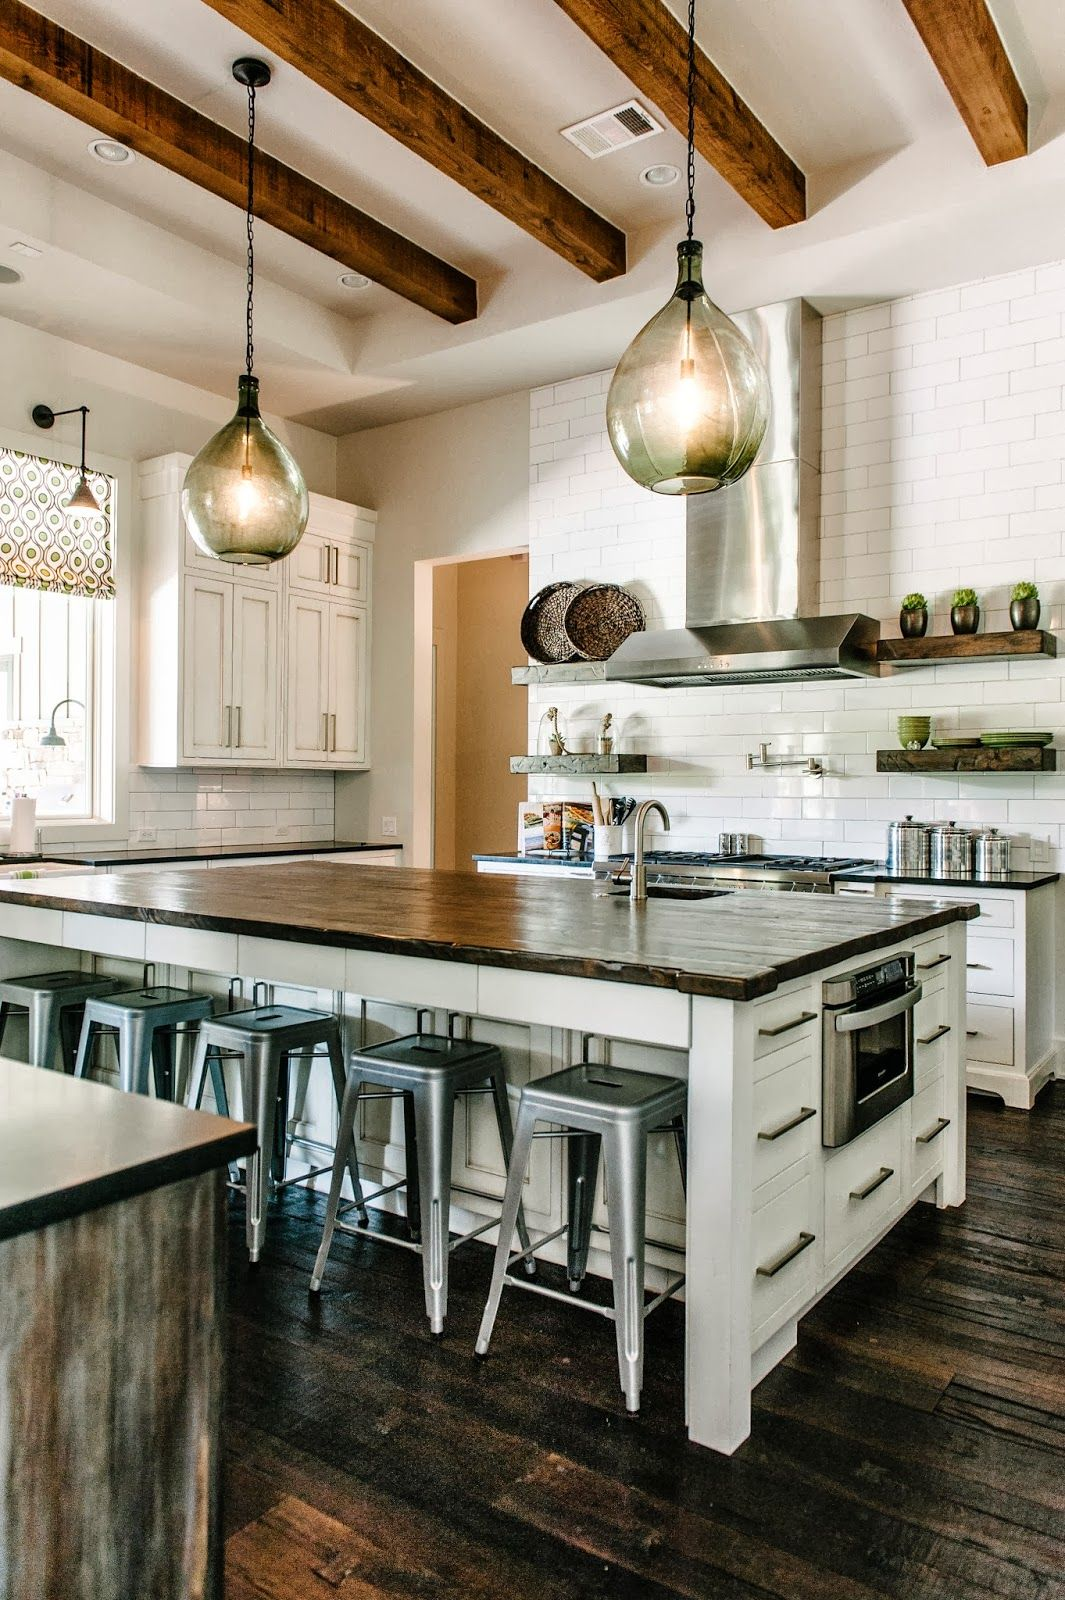 Kitchen wooden beams vintage metal stools reclaimed wood counter